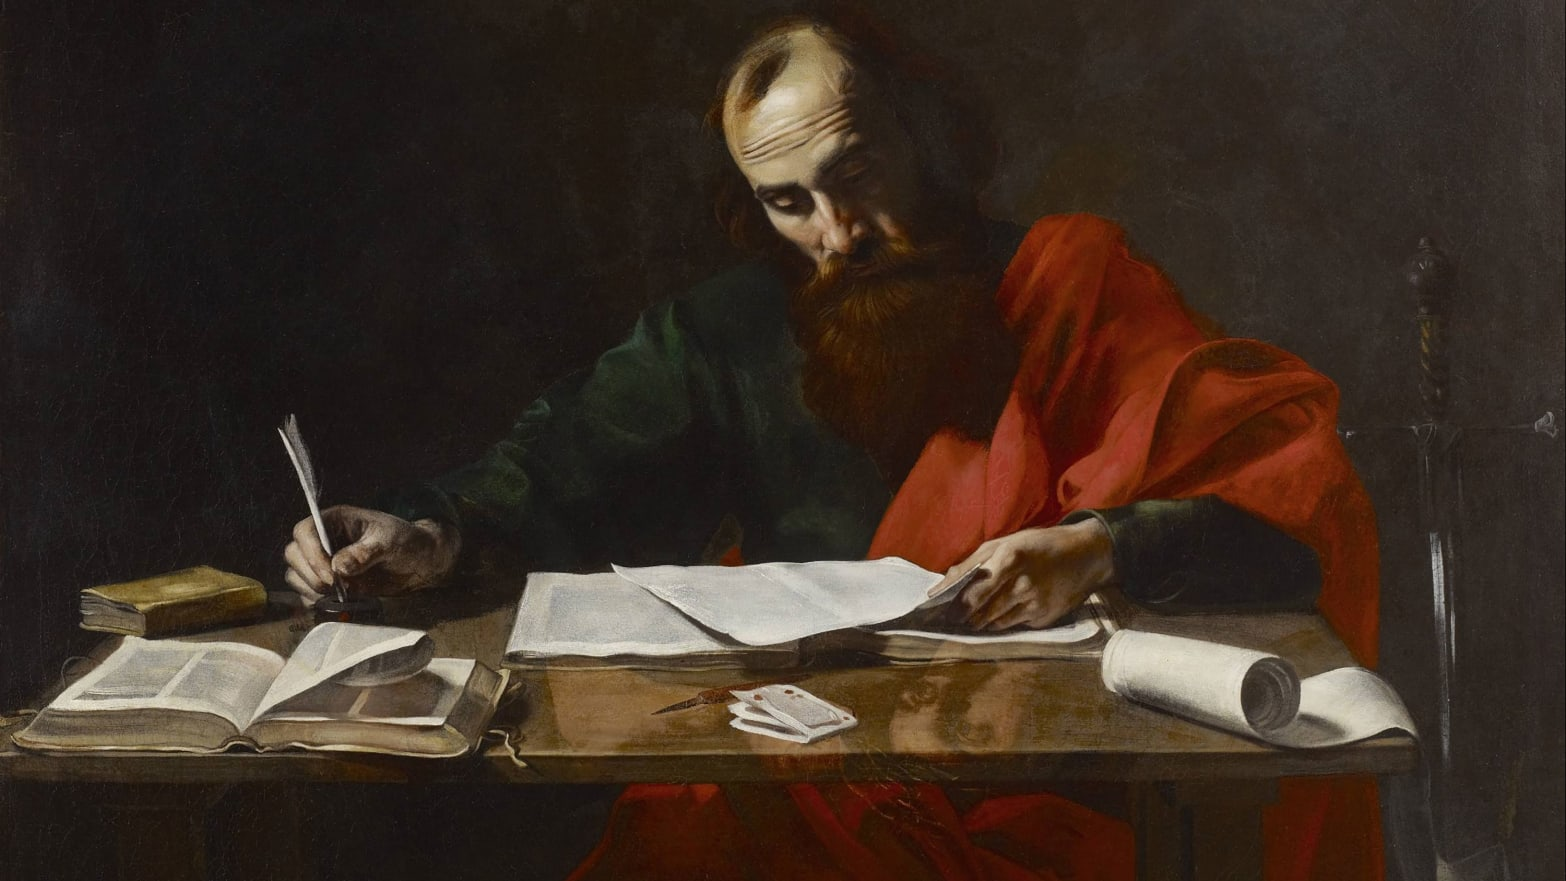 Paul the Apostle Was a (Possibly) Gay, Elite Radical Who Believed in Equality for All